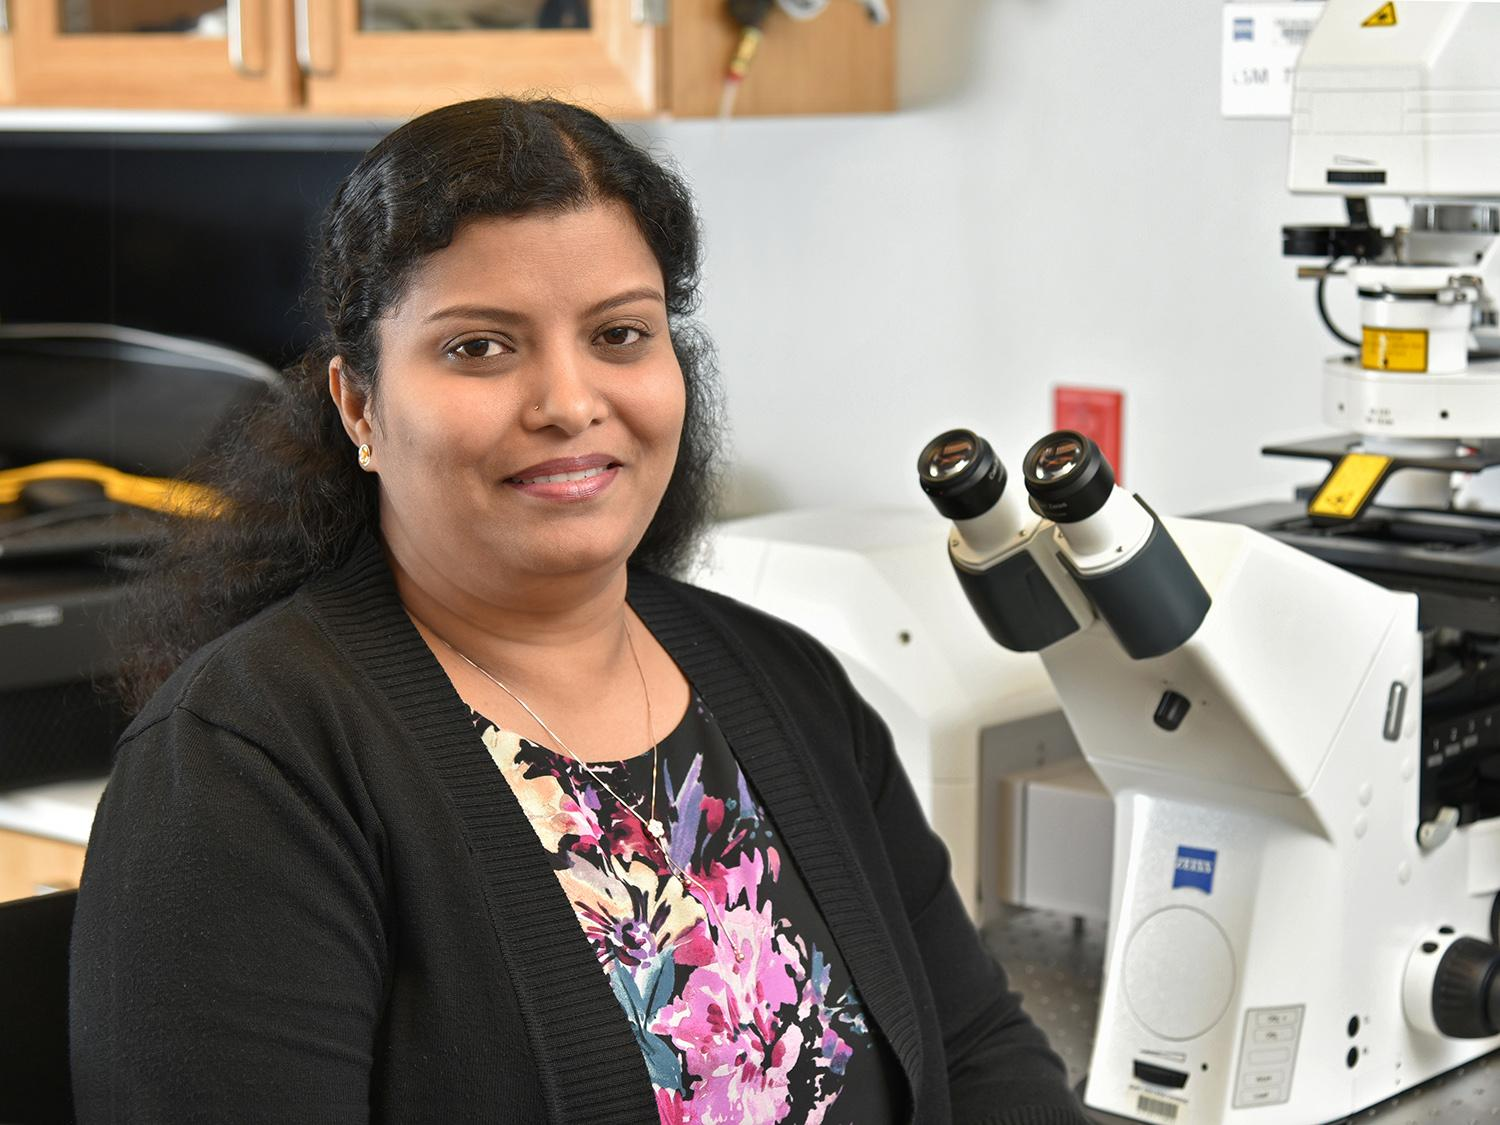 Poongodi Geetha-Loganathan, an award-winning member of biological sciences faculty, in a lab